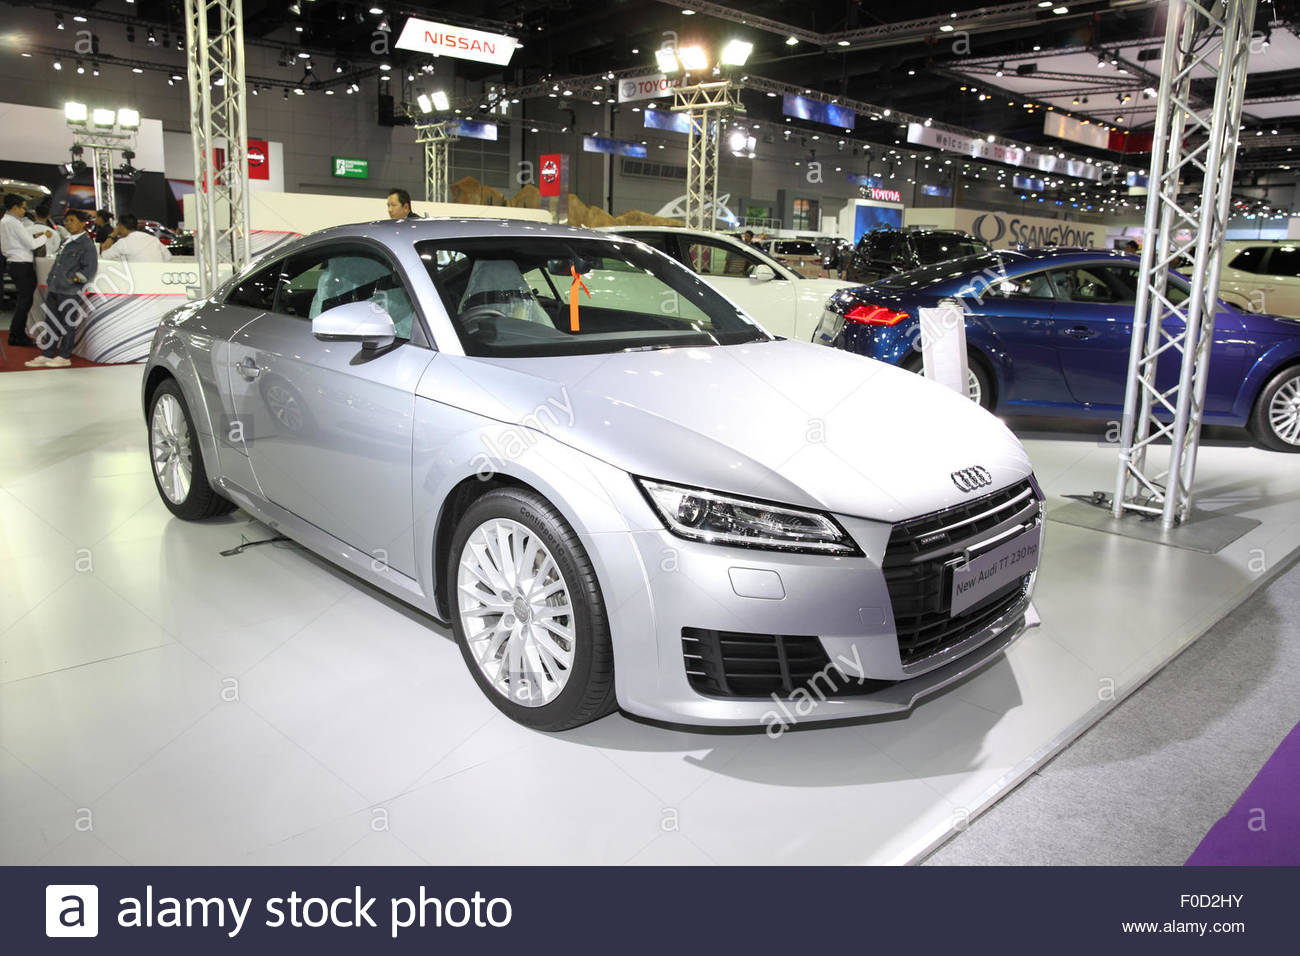 bangkok august 4 new audi tt 230 hp car on display at big motor stock photo 86339287 alamy. Black Bedroom Furniture Sets. Home Design Ideas